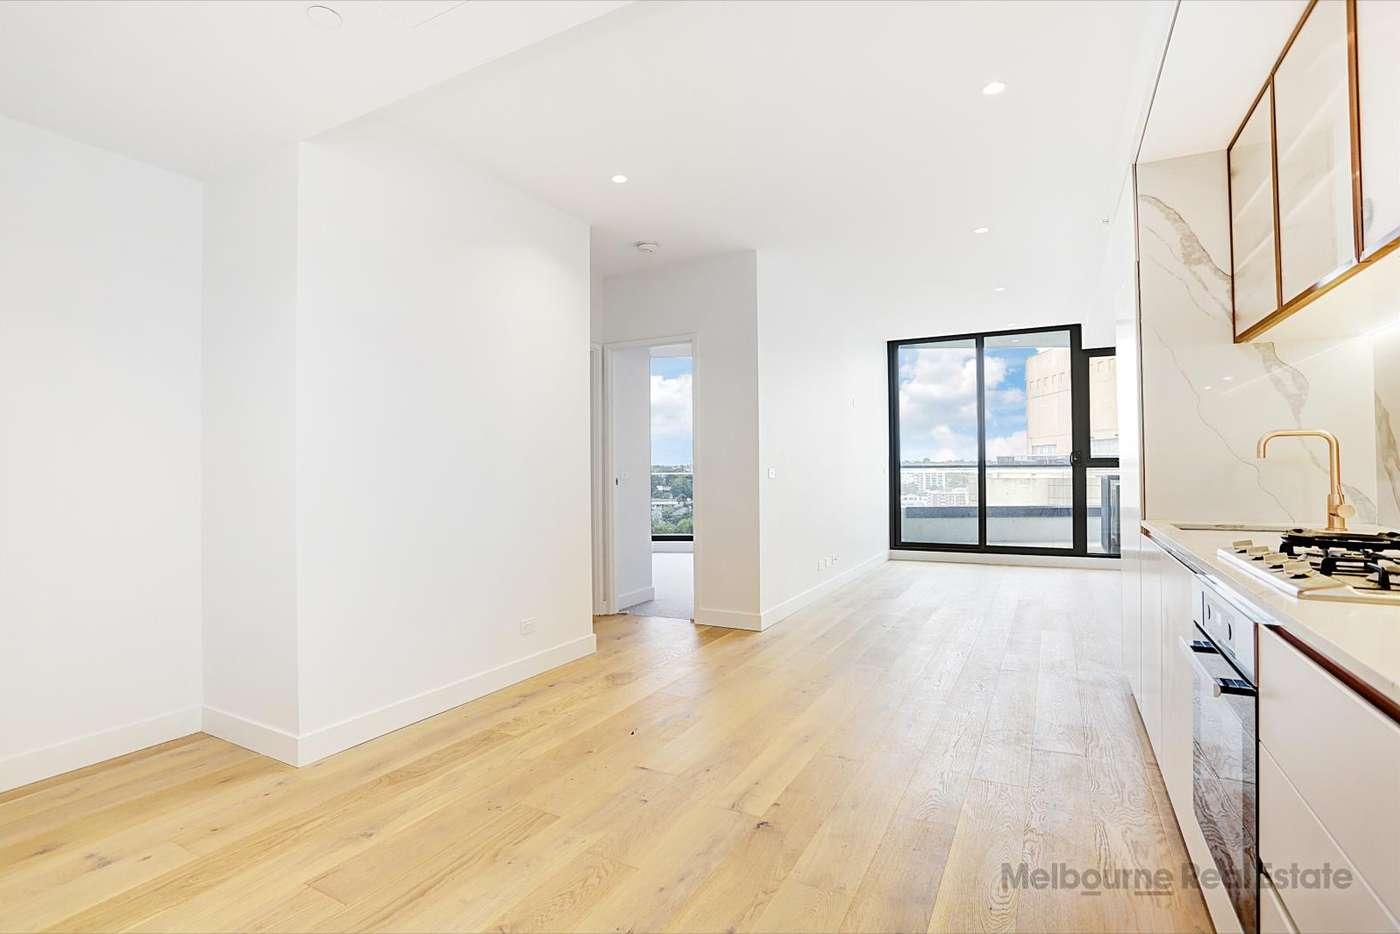 Main view of Homely apartment listing, 1602/649 Chapel Street, South Yarra VIC 3141